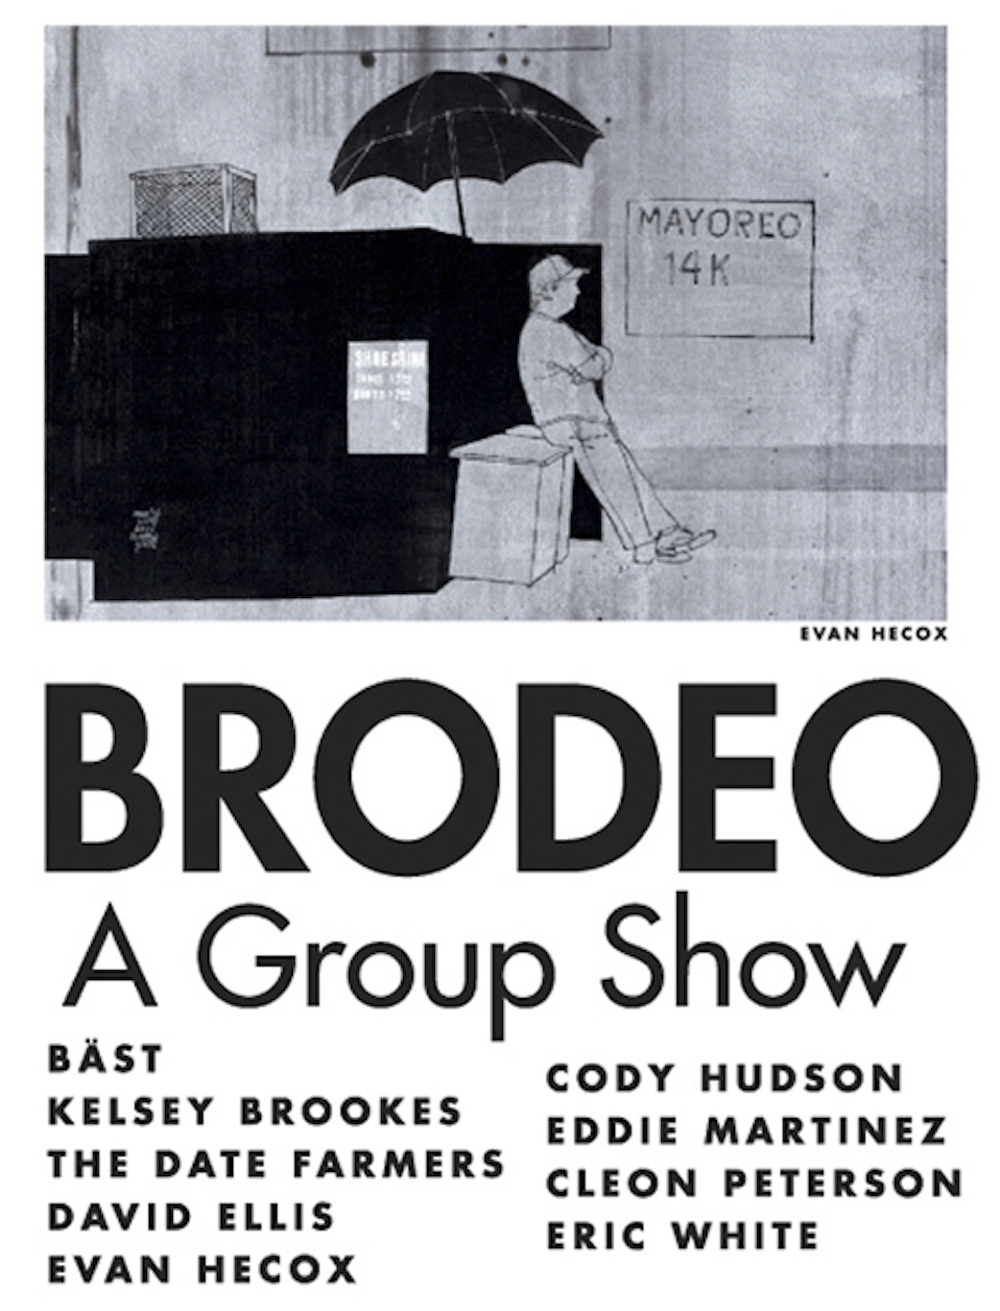 GROUP SHOW - BRODEO